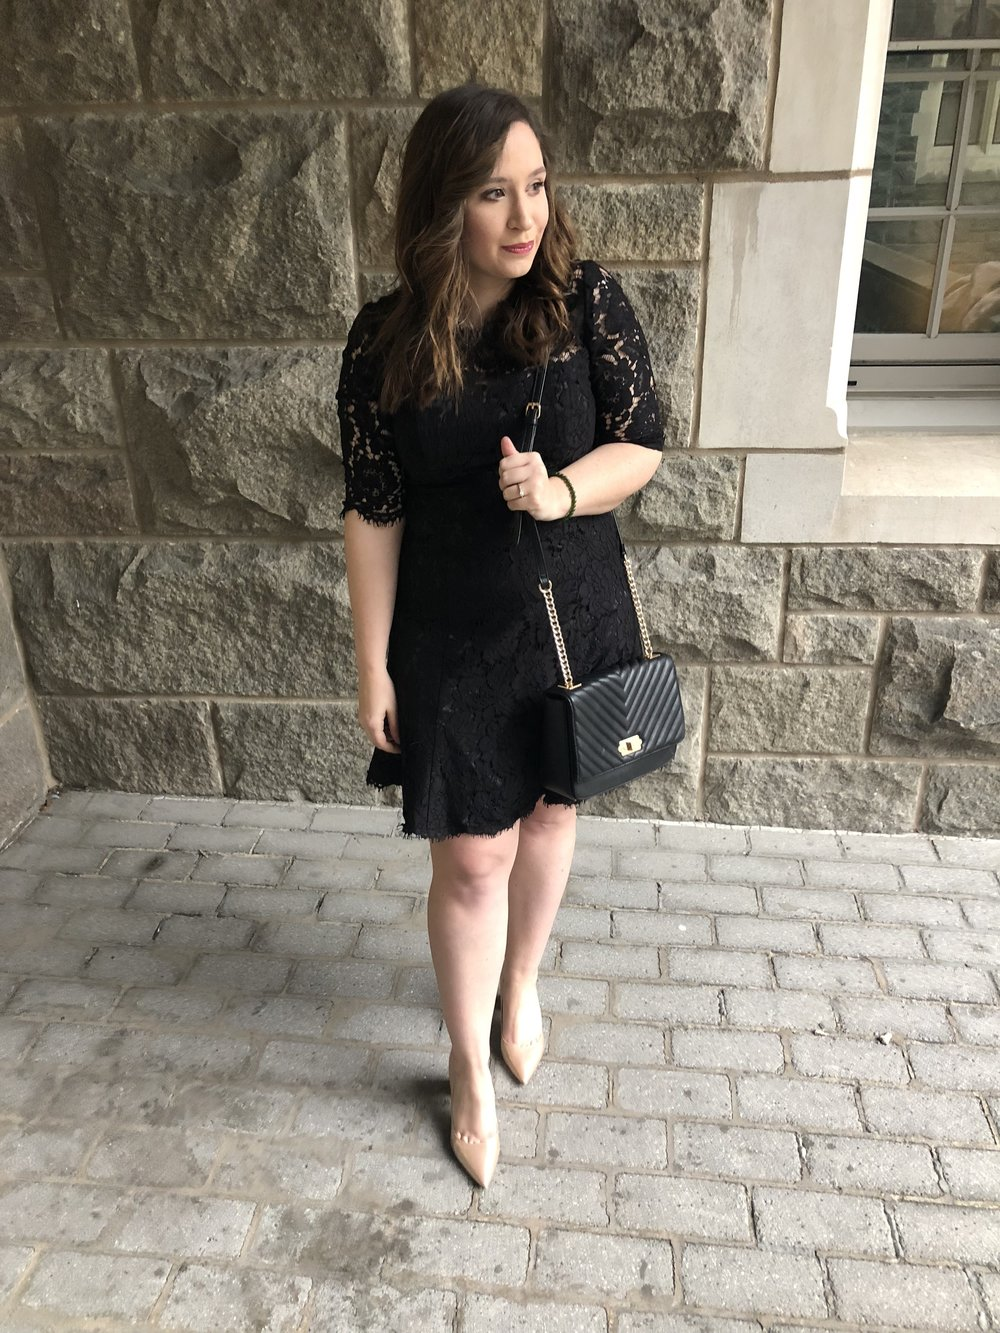 USMA 2018 100th Night Recap Eliza J Dress Outfit Perfect Little Black Dress Outfit